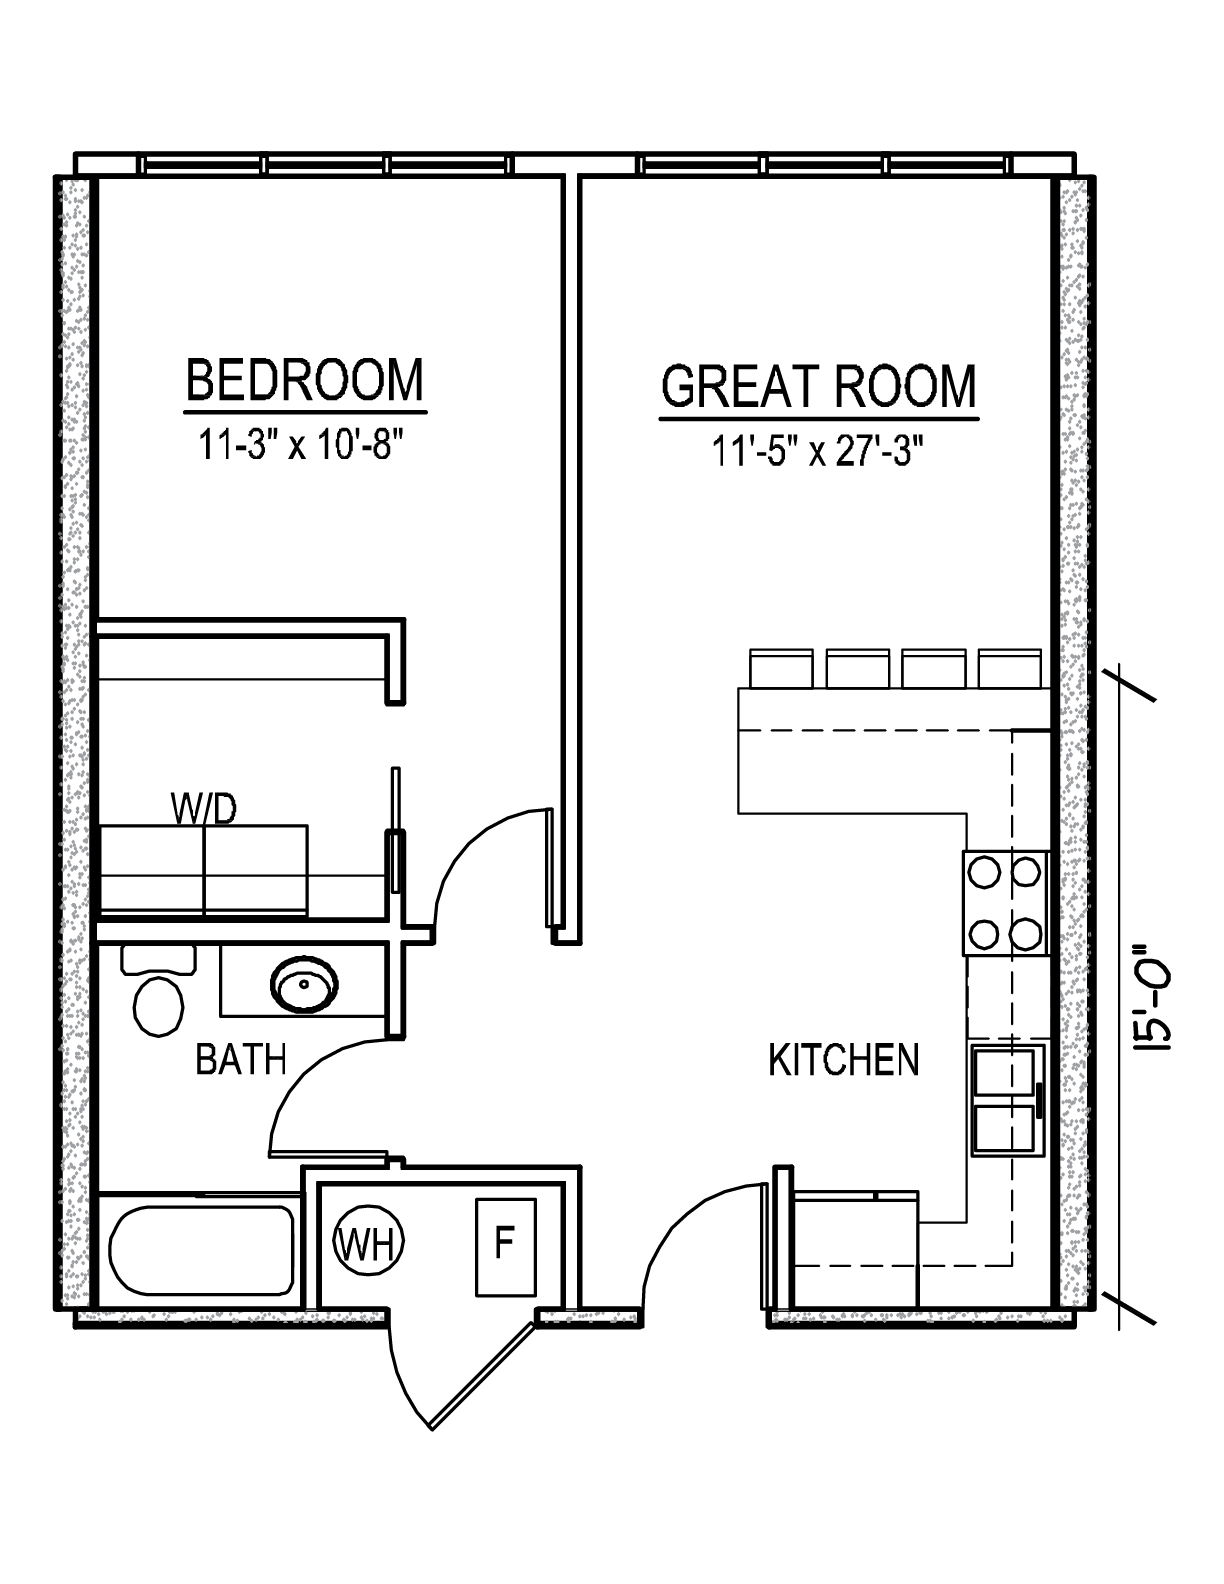 424 S Floor Plan@2x.png